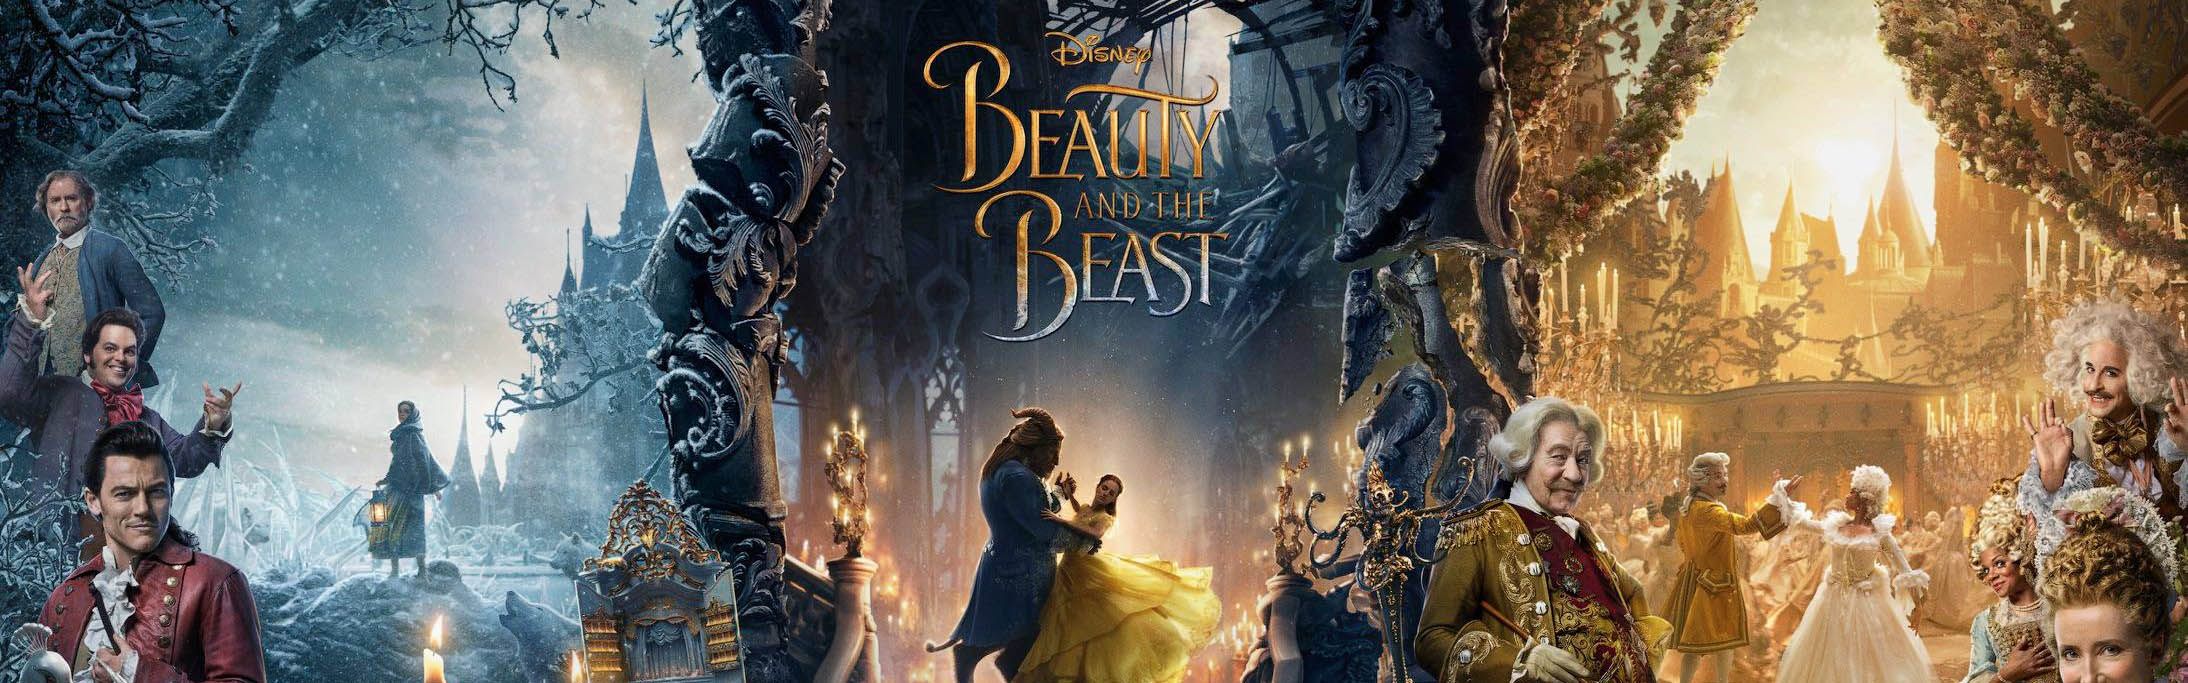 beauty-and-the-beast-news-triptych-poster-john-legend-arian-grande-and-celine-dion-beourguest-3